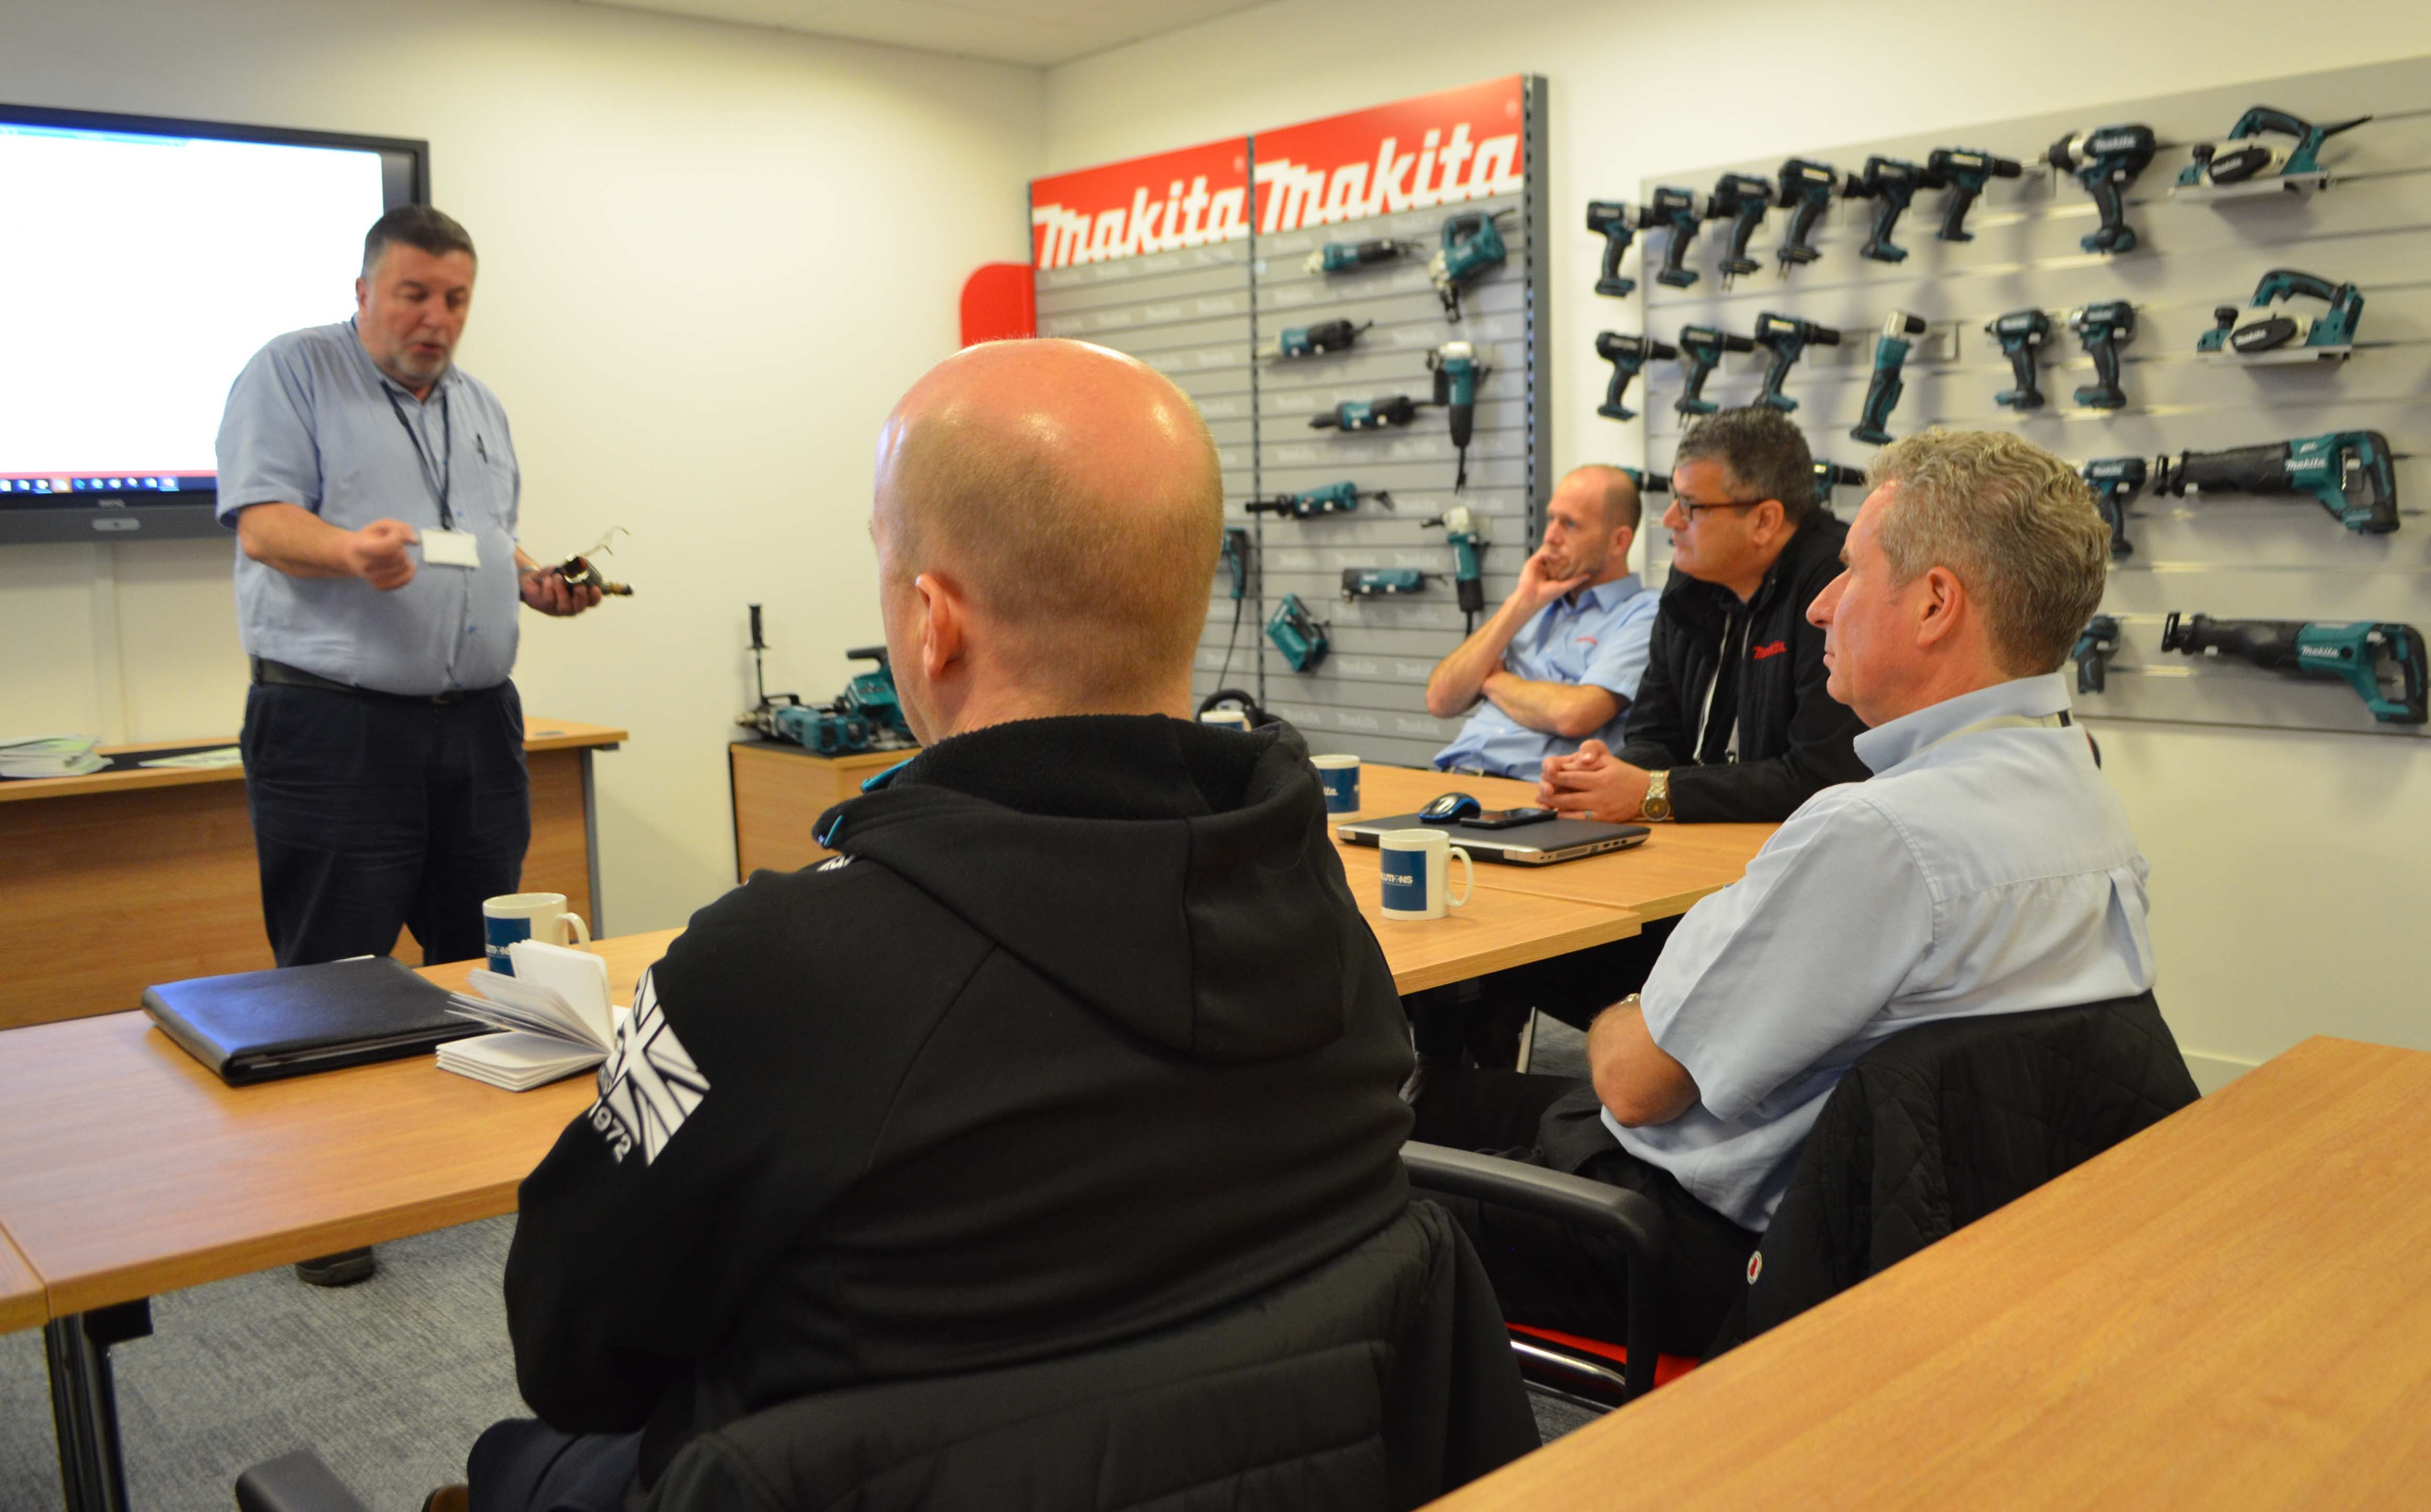 MAKITA'S NEW FACTORY SERVICE CENTRE OPENS IN LONDON